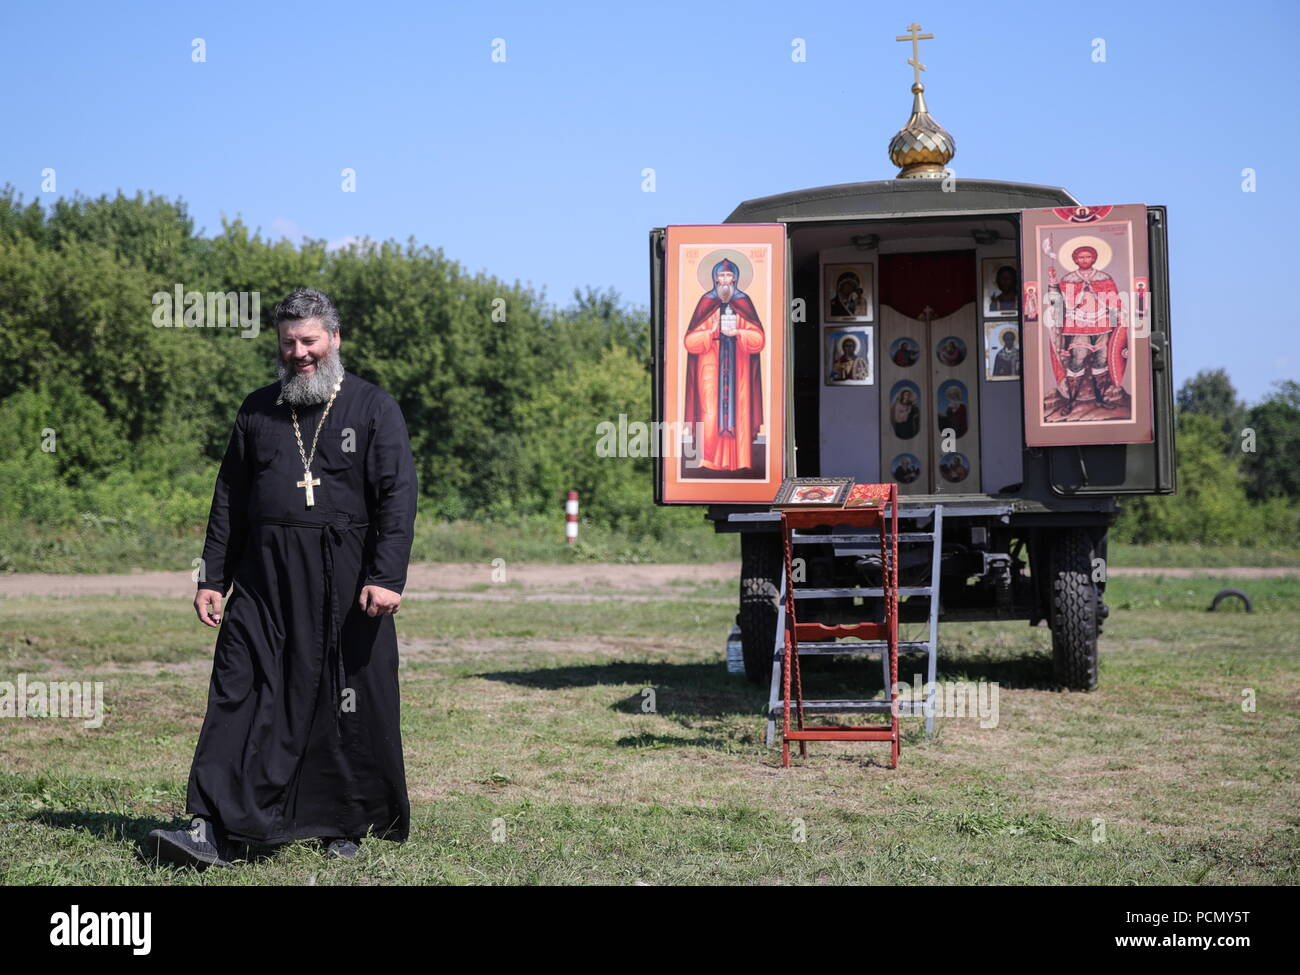 Russia. 03rd Aug, 2018. VLADIMIR REGION, RUSSIA - AUGUST 3, 2018: A Russian Orthodox priest near a mobile chapel, during the Open Water contest between pontoon bridge units at the 2018 International Army Games on the Oka River. Sergei Bobylev/TASS Credit: ITAR-TASS News Agency/Alamy Live News - Stock Image